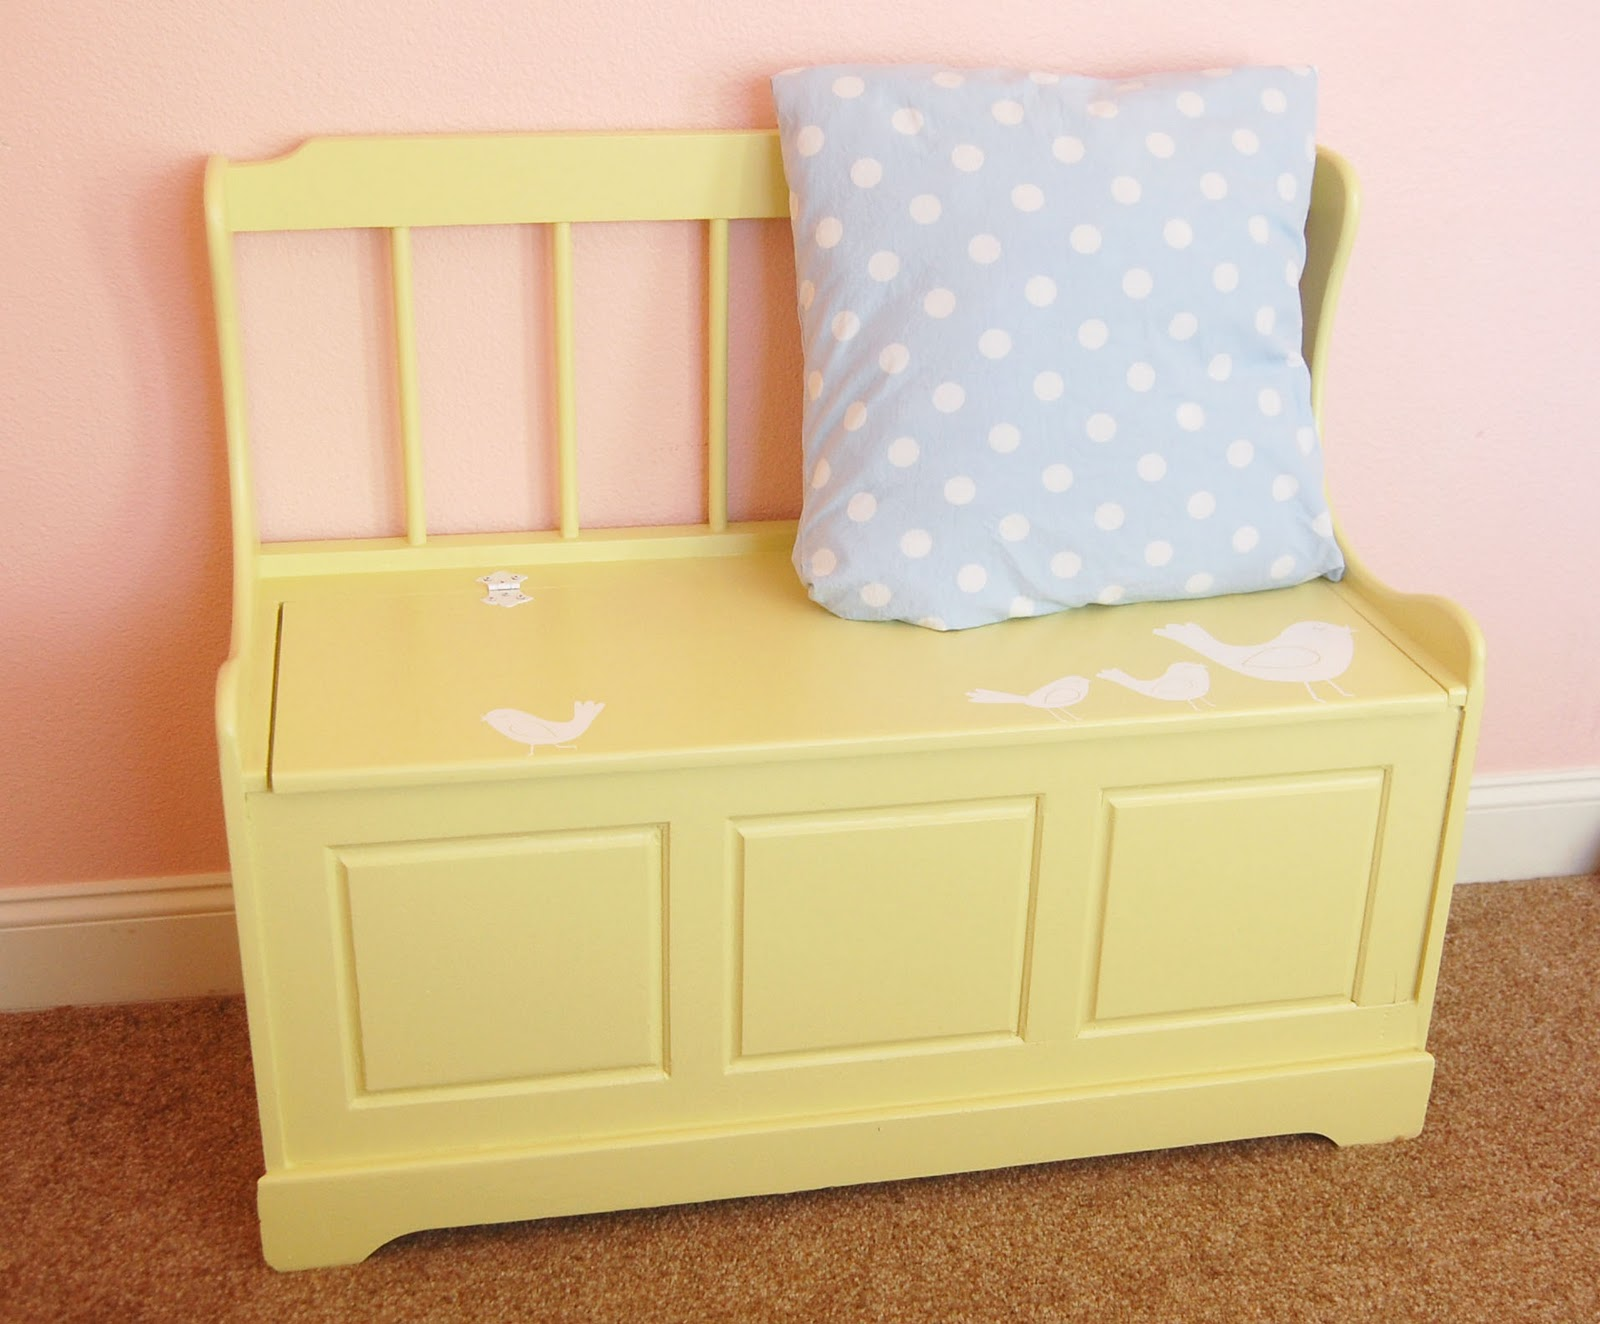 Toy Box Bench Make-Over